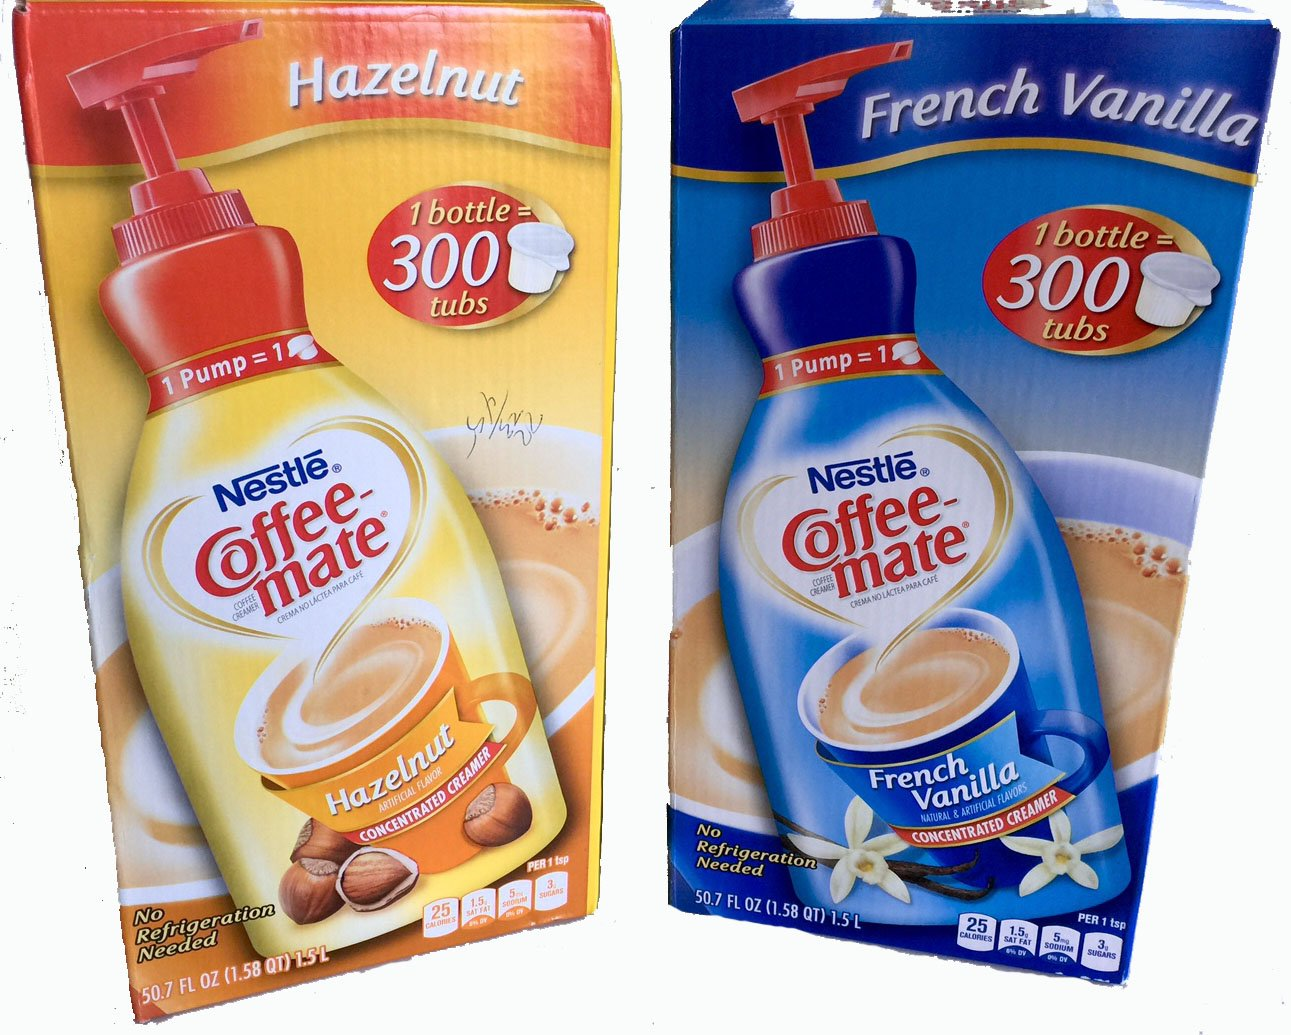 Coffee Mate Liquid Concentrate 1.5 Liter Pump Bottle - Variety 2 Pack (Hazelnut & French Vanilla) by Nestle Coffee Mate